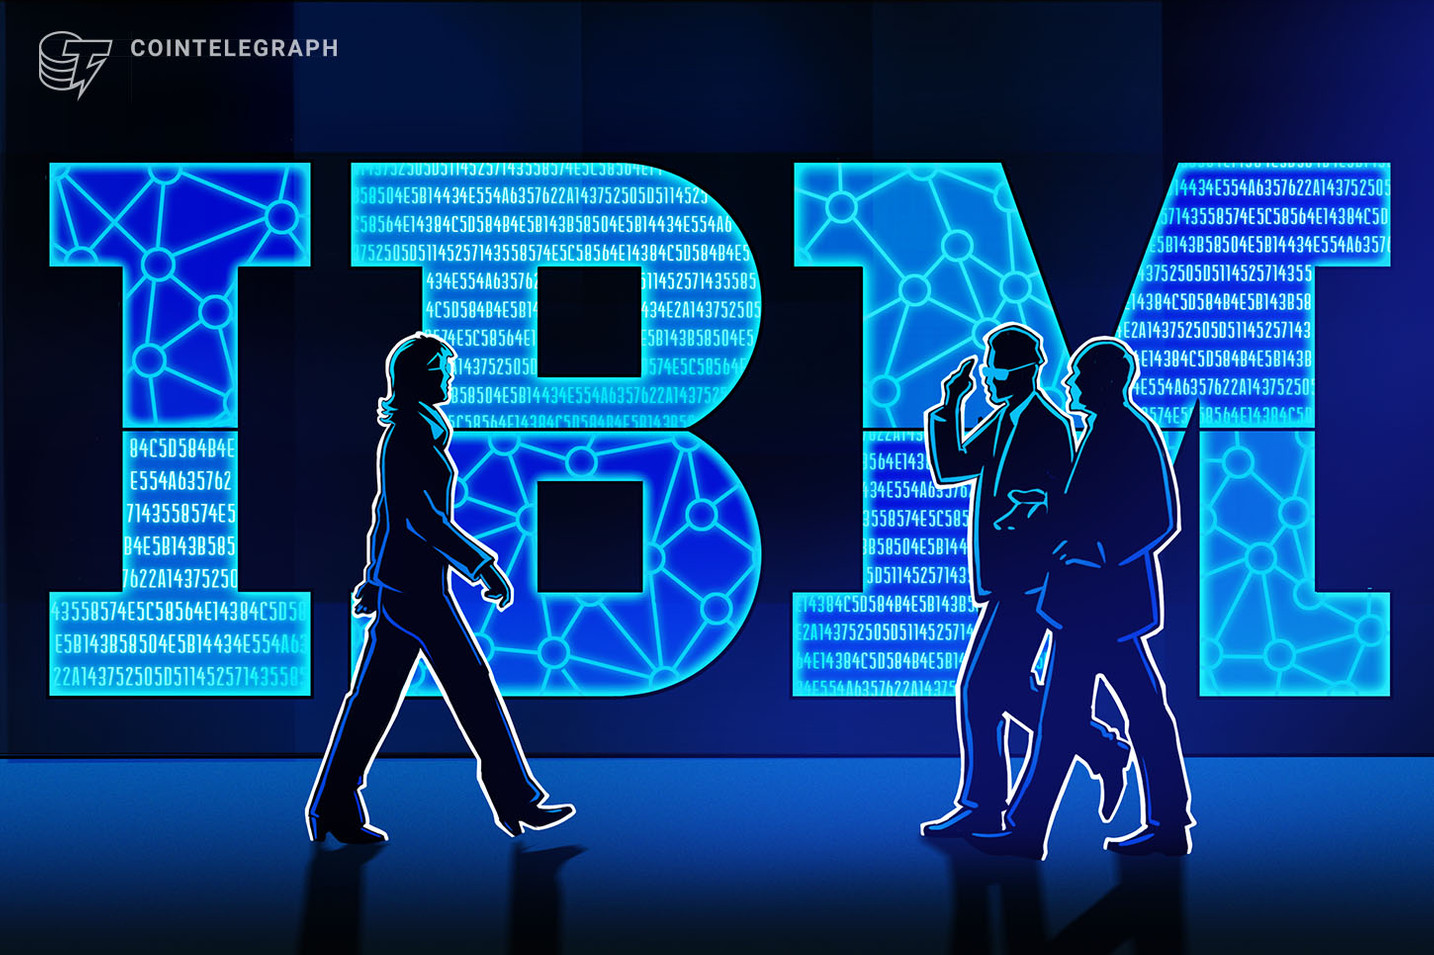 IBM executive says blockchain becoming a useful 'real business tool'